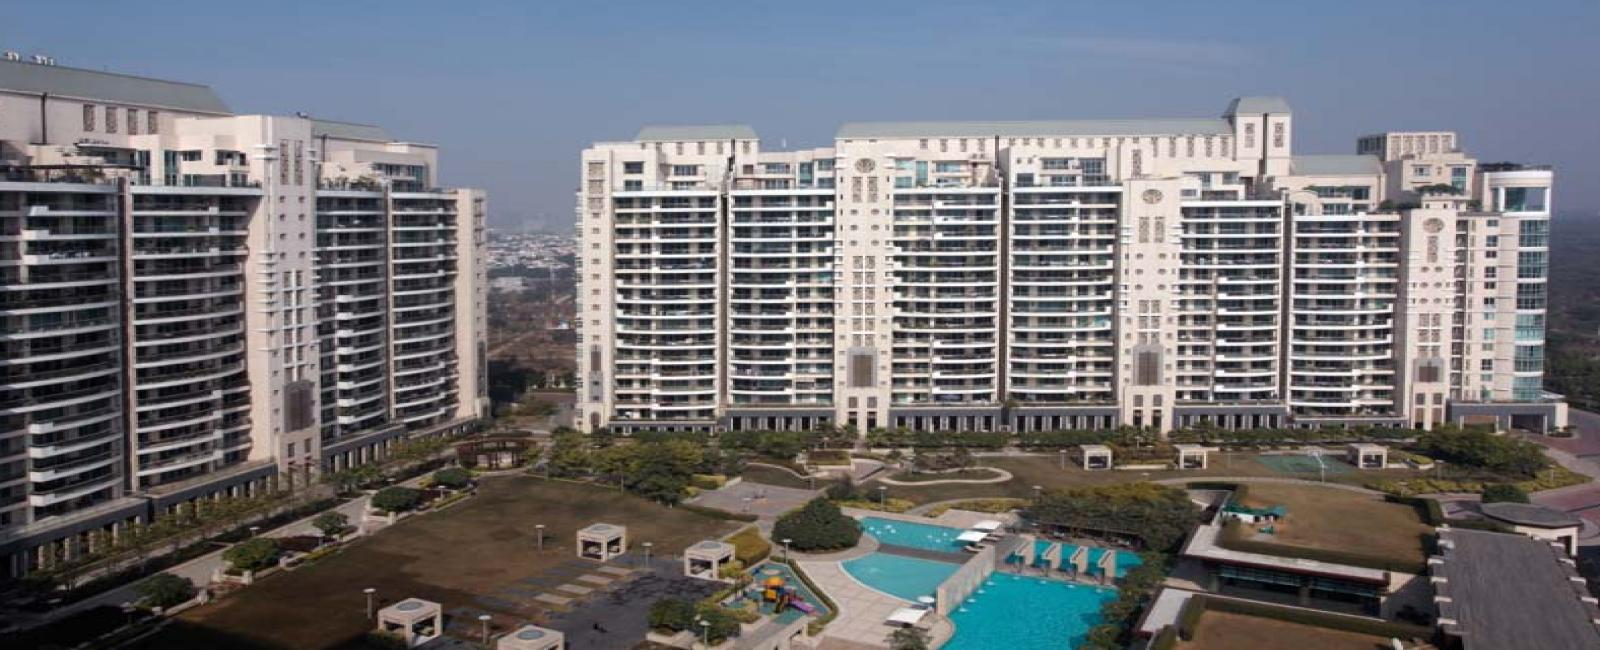 DLF THE CAMELLIAS Sector 42 Golf Course Road Gurgaon